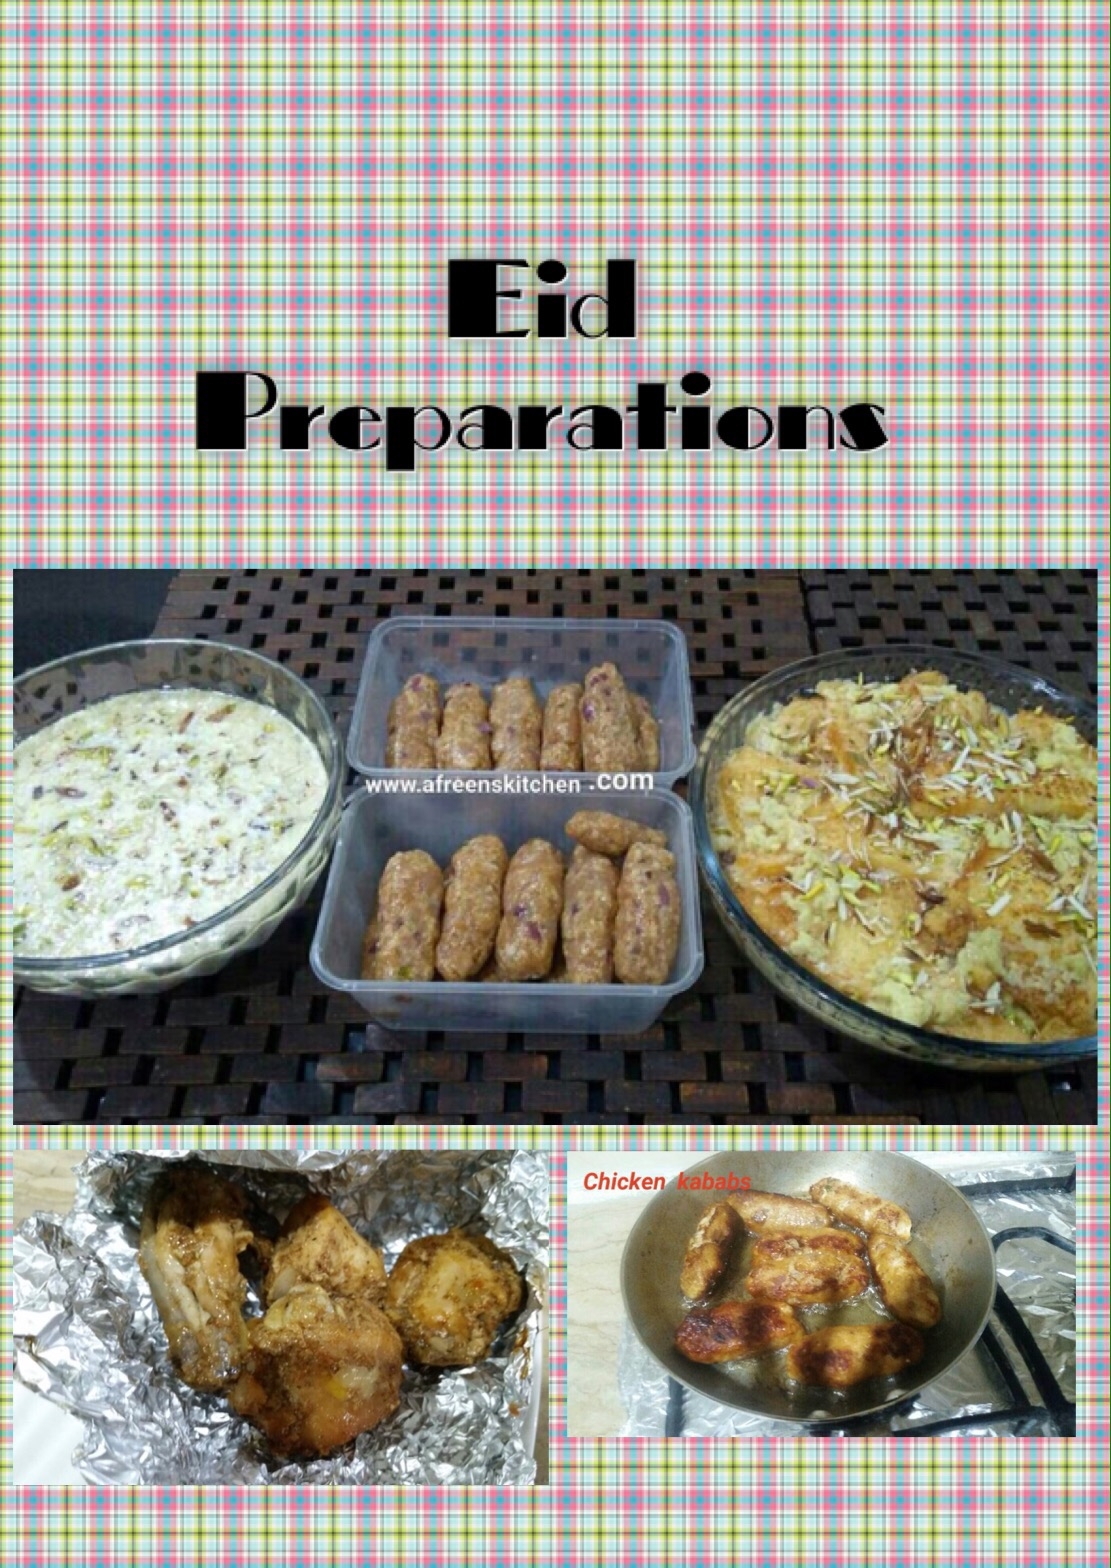 Make ahead recipes for eid trolleyeid ul fitr preparations india pakistan and bangladesh has very hot traditional dishes to celebrate eid ul fitr a three day holiday at the end of ramadan special dishes include forumfinder Image collections